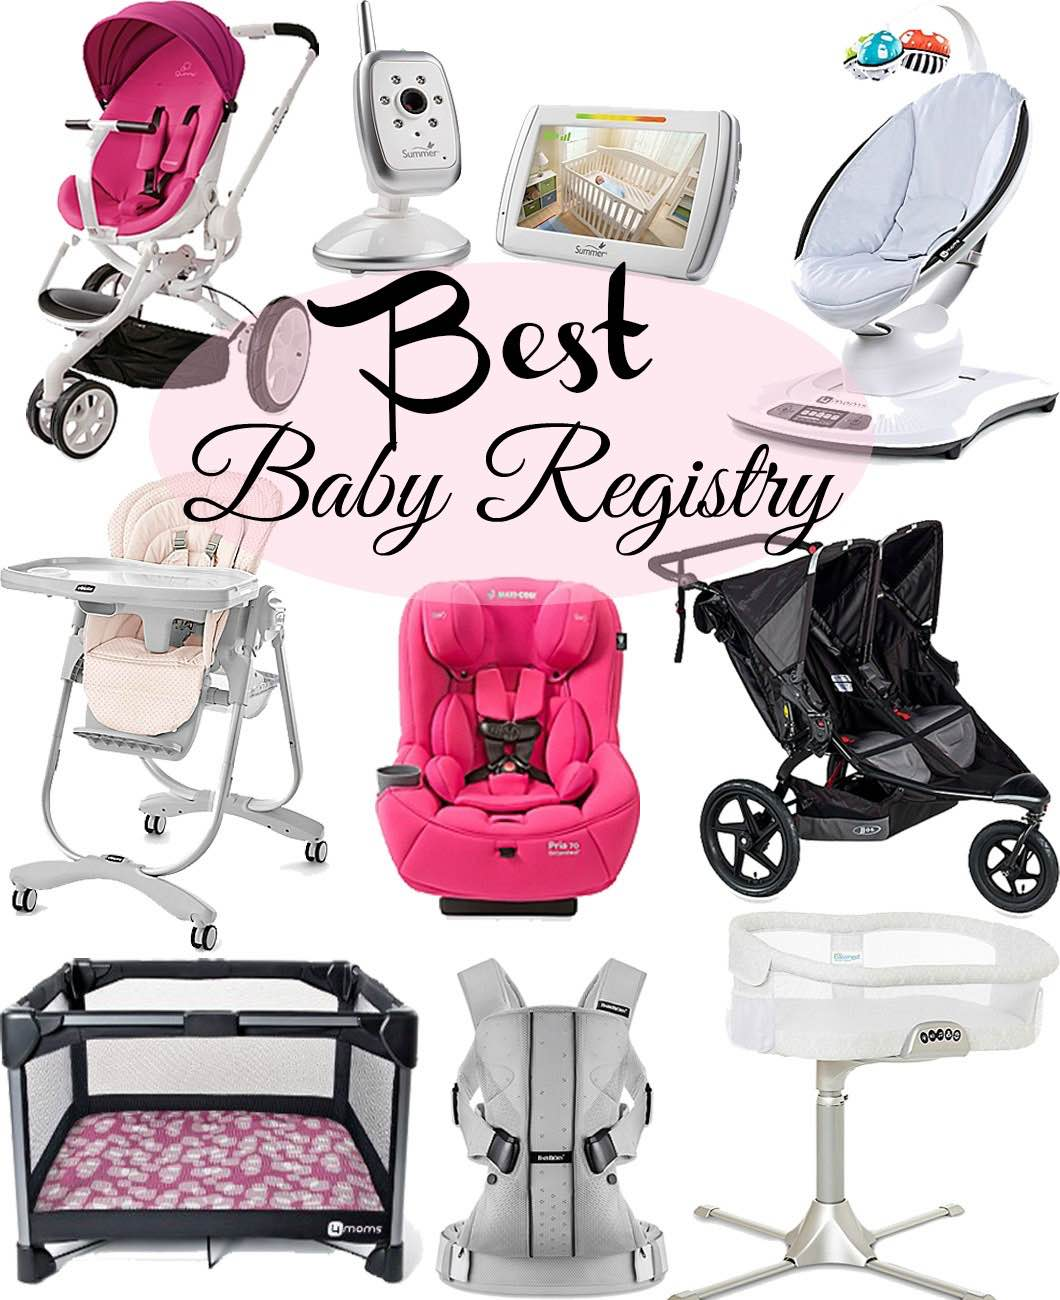 Shapely Happilyhughes Baby Registry Buy Buy Baby By Atlanta Blogger Jessica Buy Buy Baby Parenting Happily Hughes Buy Buy Baby Registry Login Buy Buy Baby Registry Help Baby Registry baby Buy Buy Baby Registry